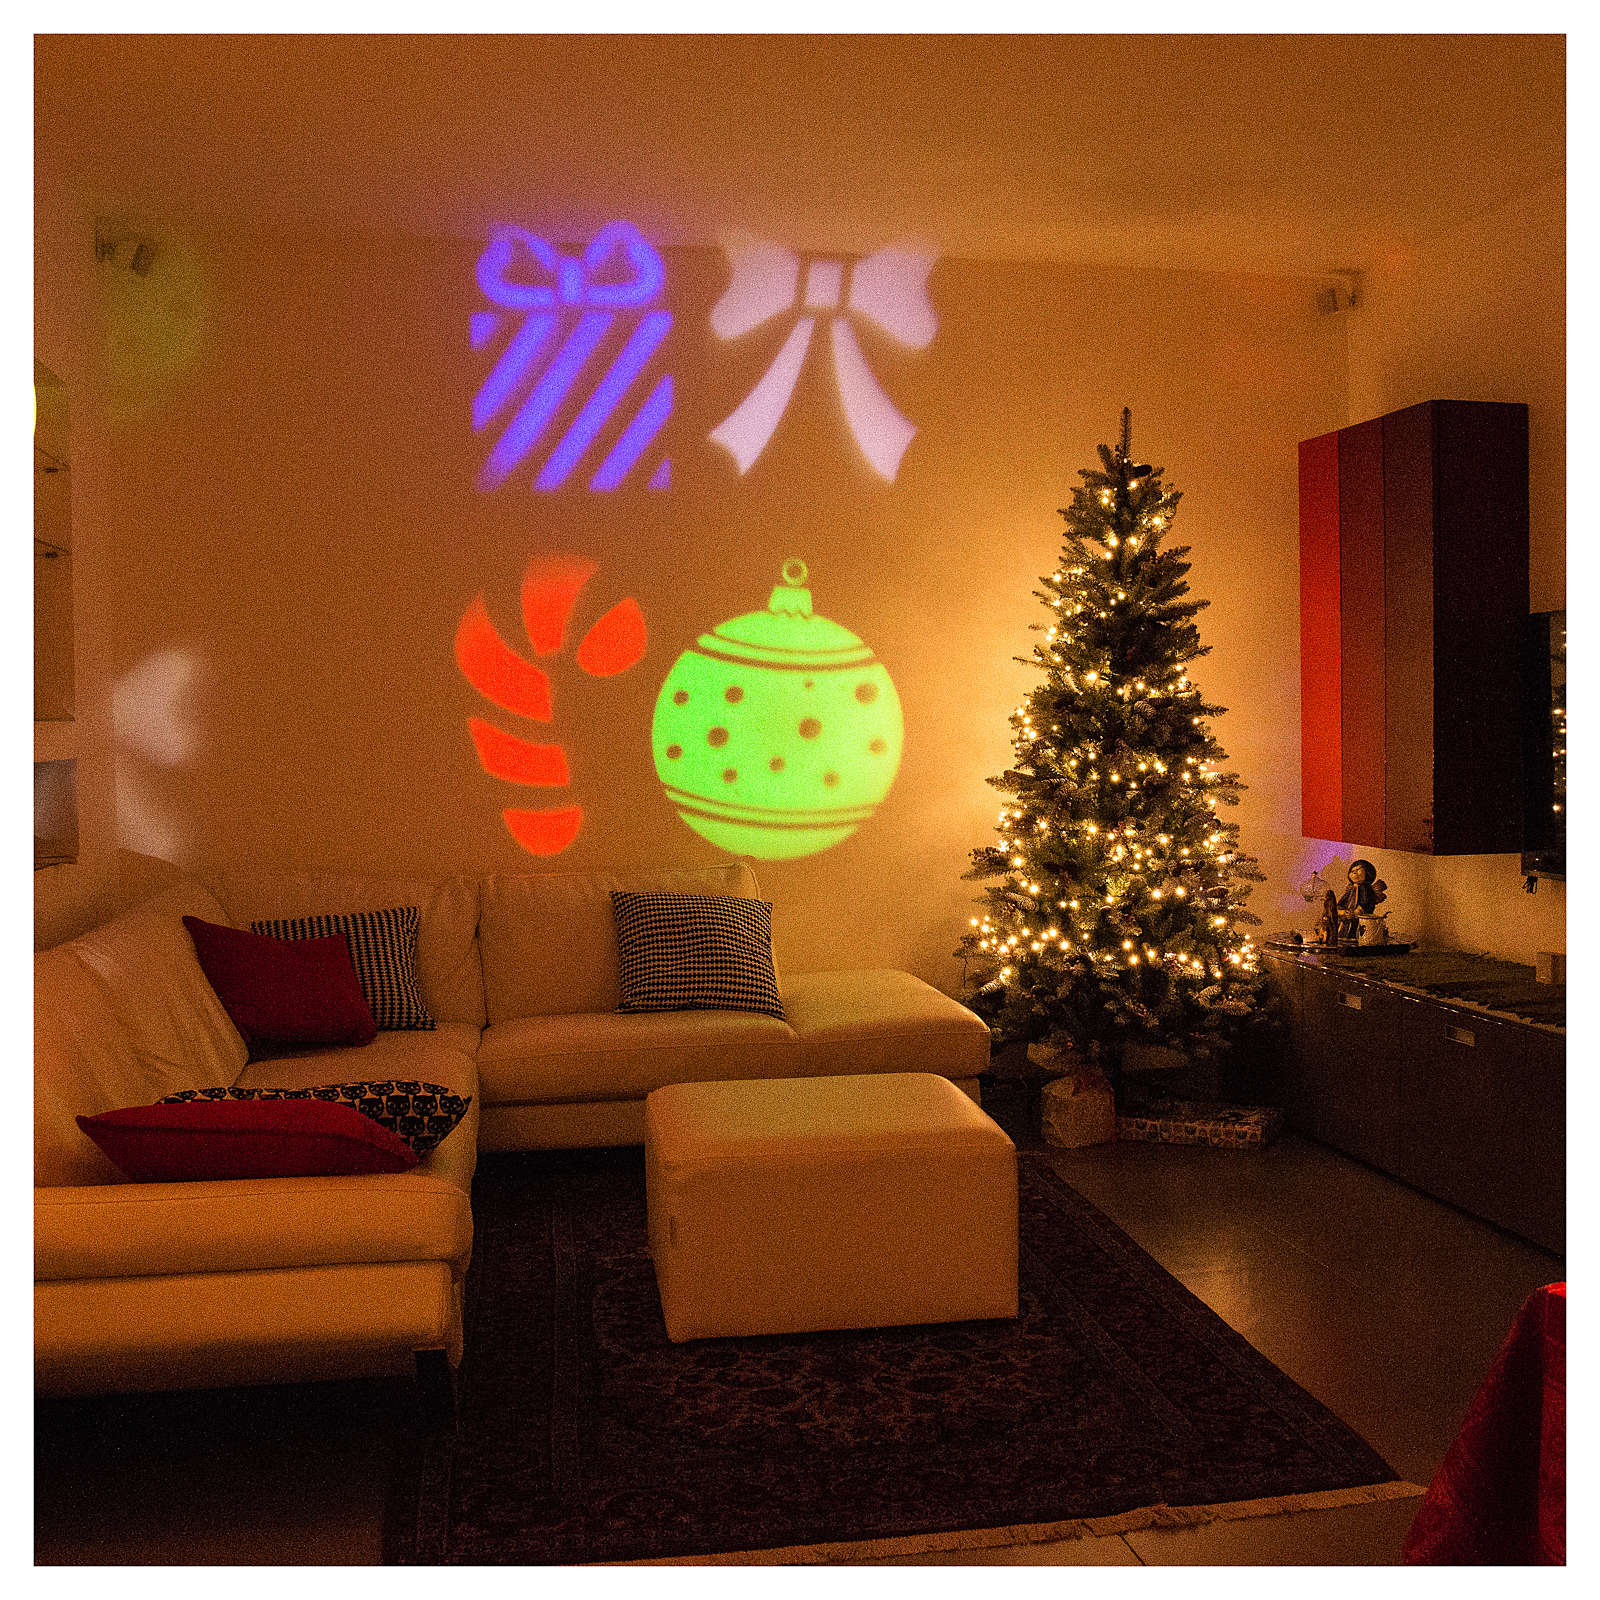 Proiettore led Christmas interno esterno 3